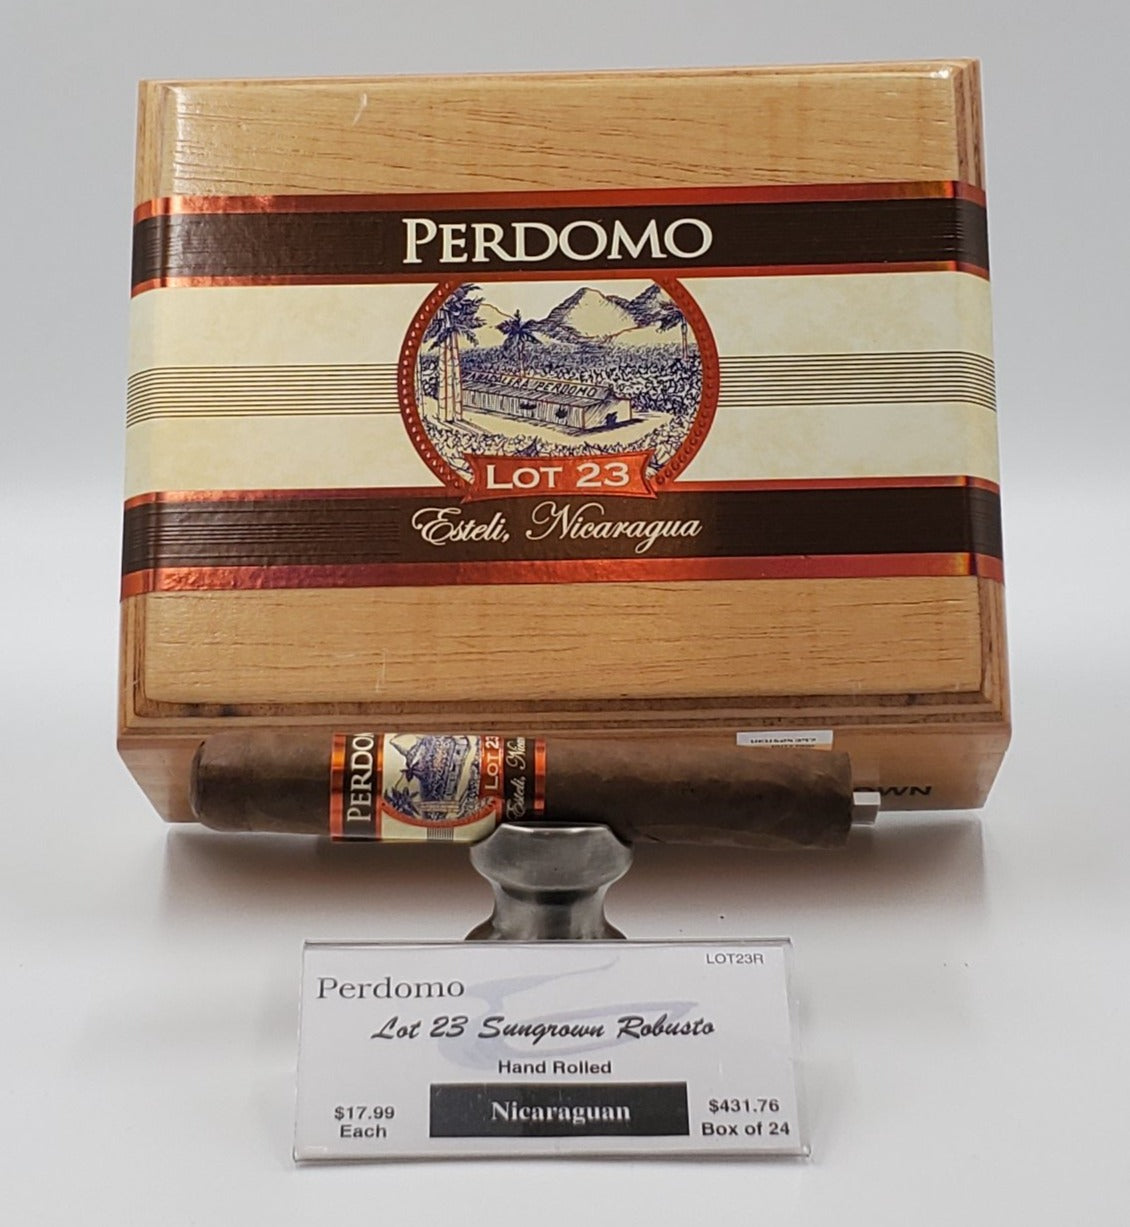 Perdomo Lot 23 Robusto Sungrown